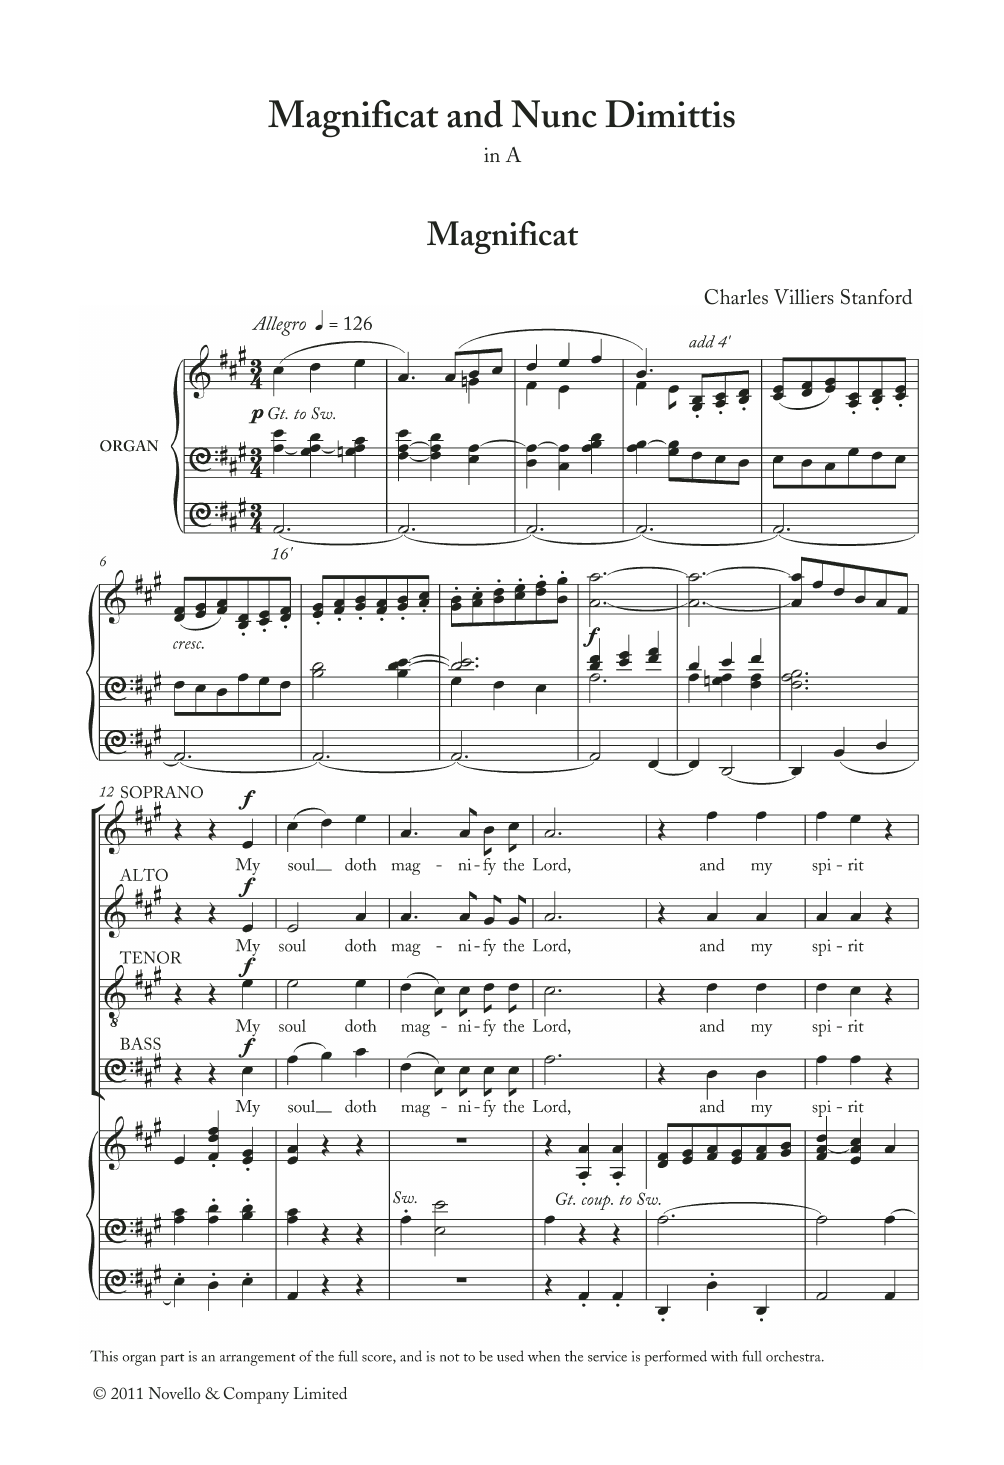 Magnificat And Nunc Dimittis In A Sheet Music